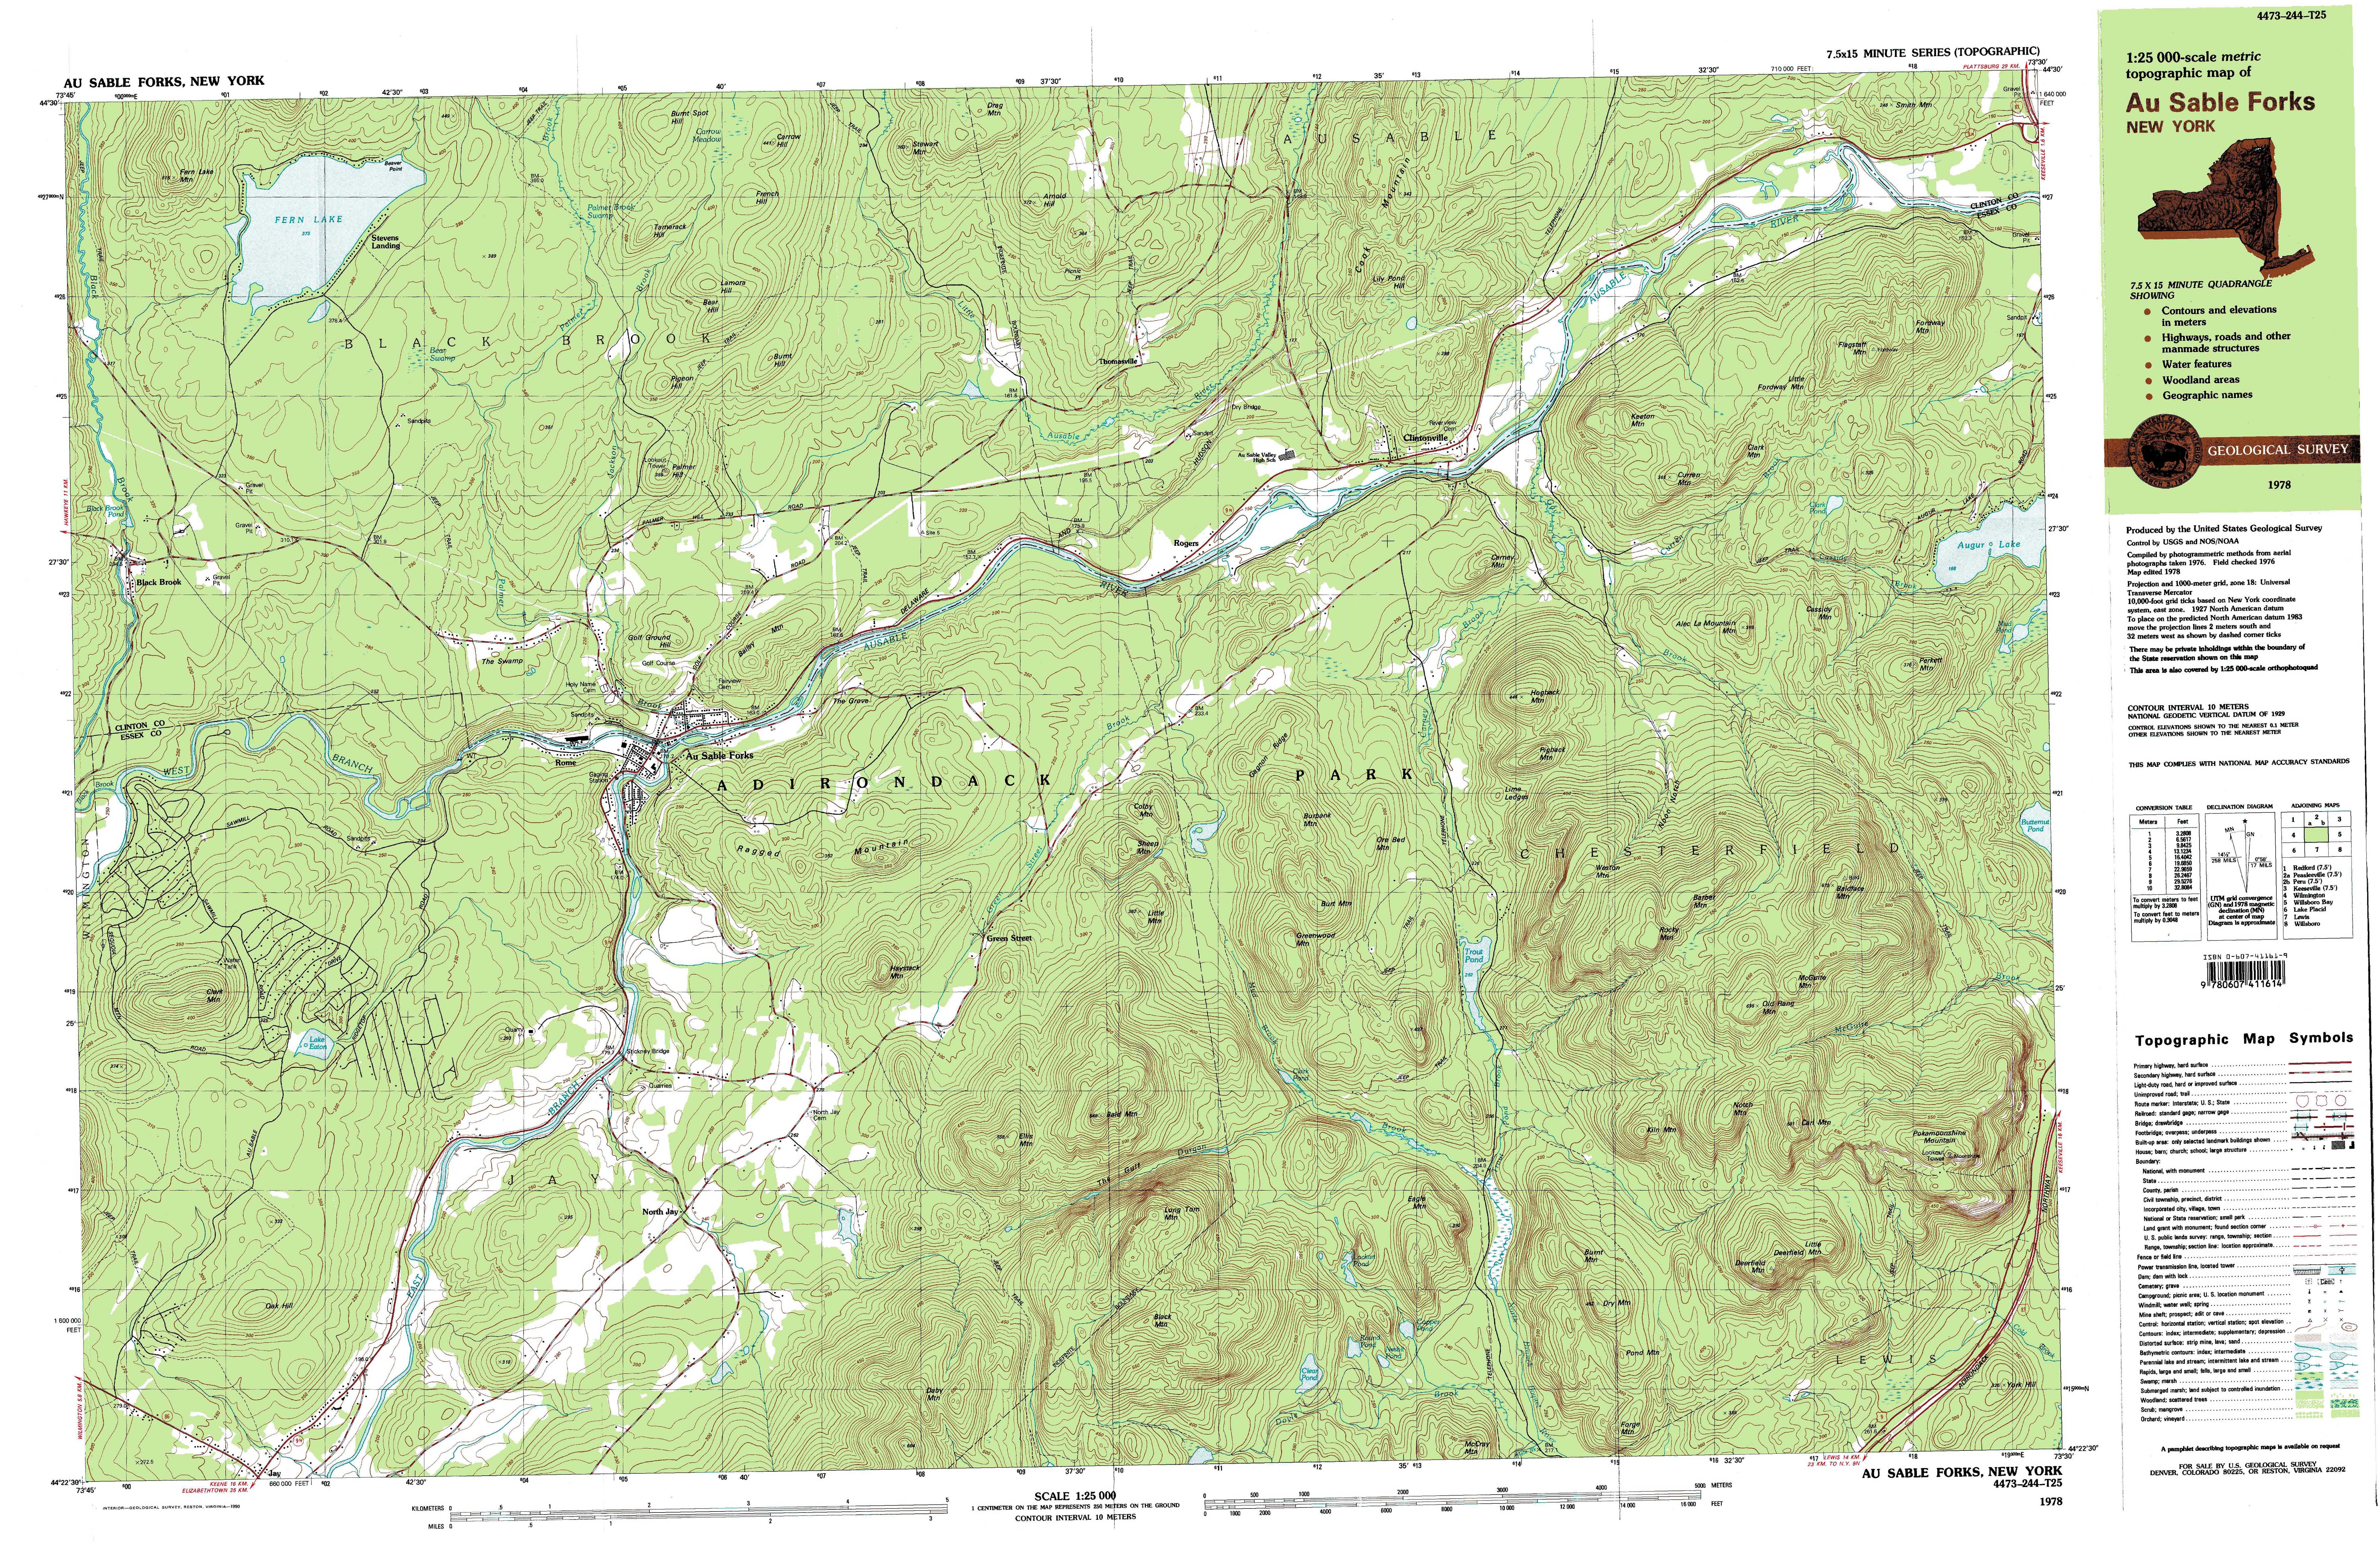 Topography Map Of Ohio.New York Topo Maps 7 5 Minute Topographic Maps 1 24 000 Scale